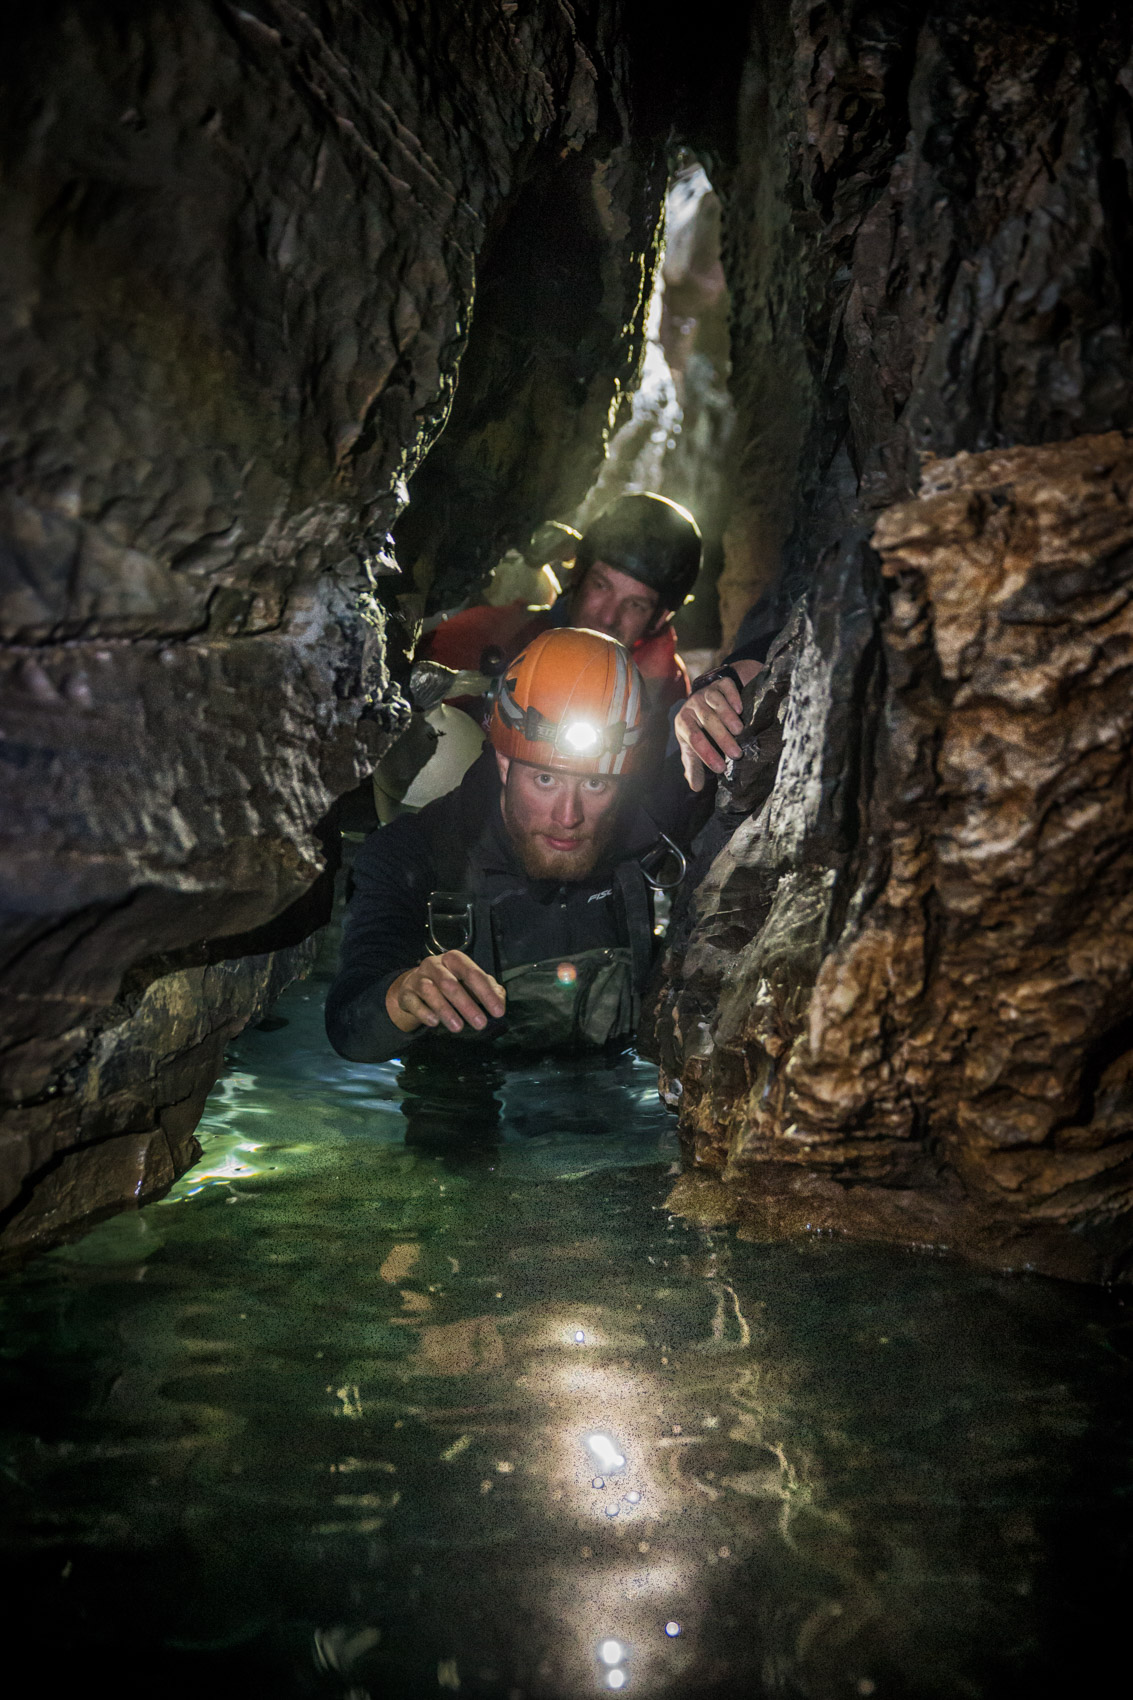 Caving | Stefan Kuerzi - Adventure Photography